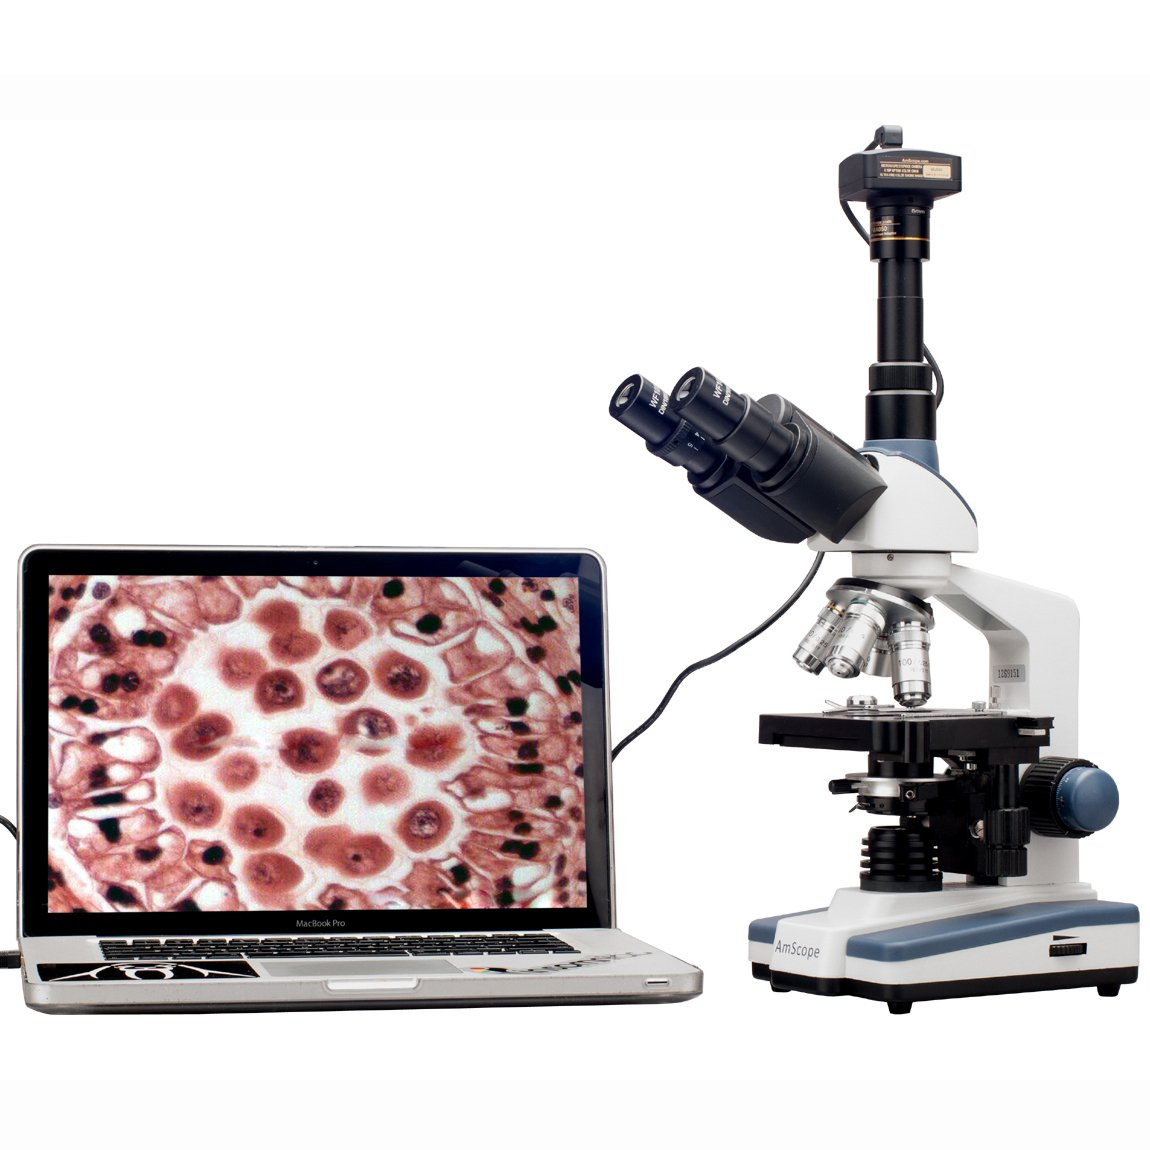 AmScope T120B-5M Digital Professional Siedentopf Trinocular Compound Microscope, 40X-2000X Magnification, WF10x and WF20x Eyepieces, Brightfield, LED Illumination, Abbe Condenser with Iris Diaphragm, Double-Layer Mechanical Stage, 100-240VAC, Includes 5MP